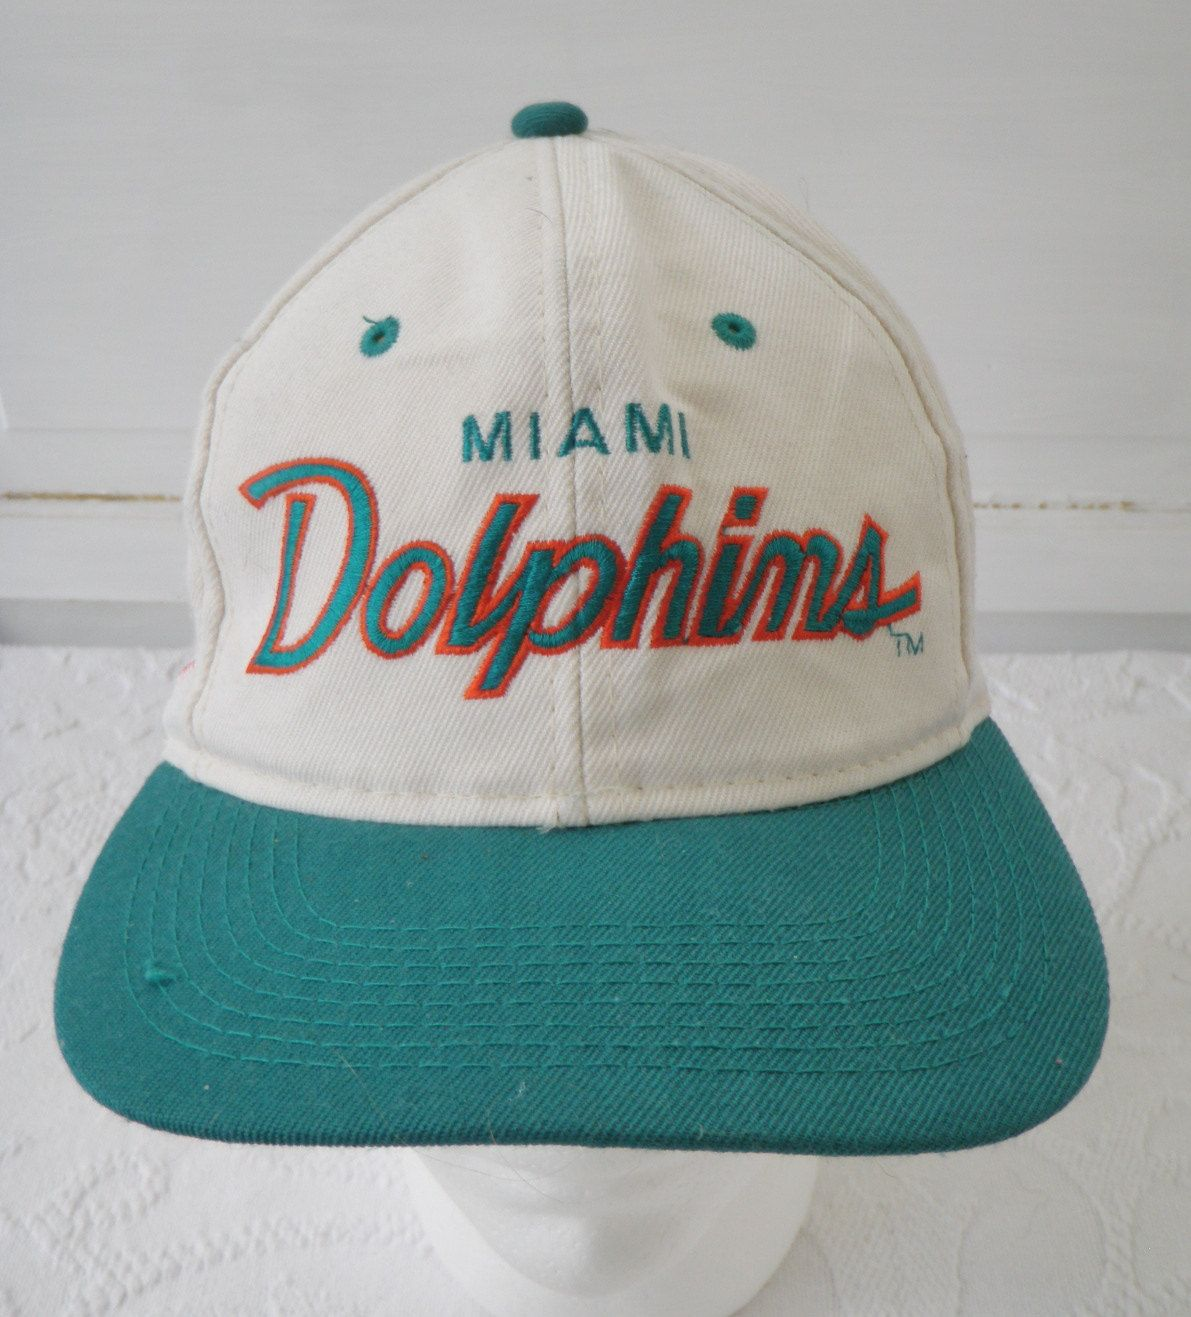 Vintage Miami Dolphins Hat Sports Specialties Script Snapback Hat Cap 90s  Cotton Twill One Size Made in Korea NFL Football by TraSheeWomen on Etsy   vintage ... 205a0863e